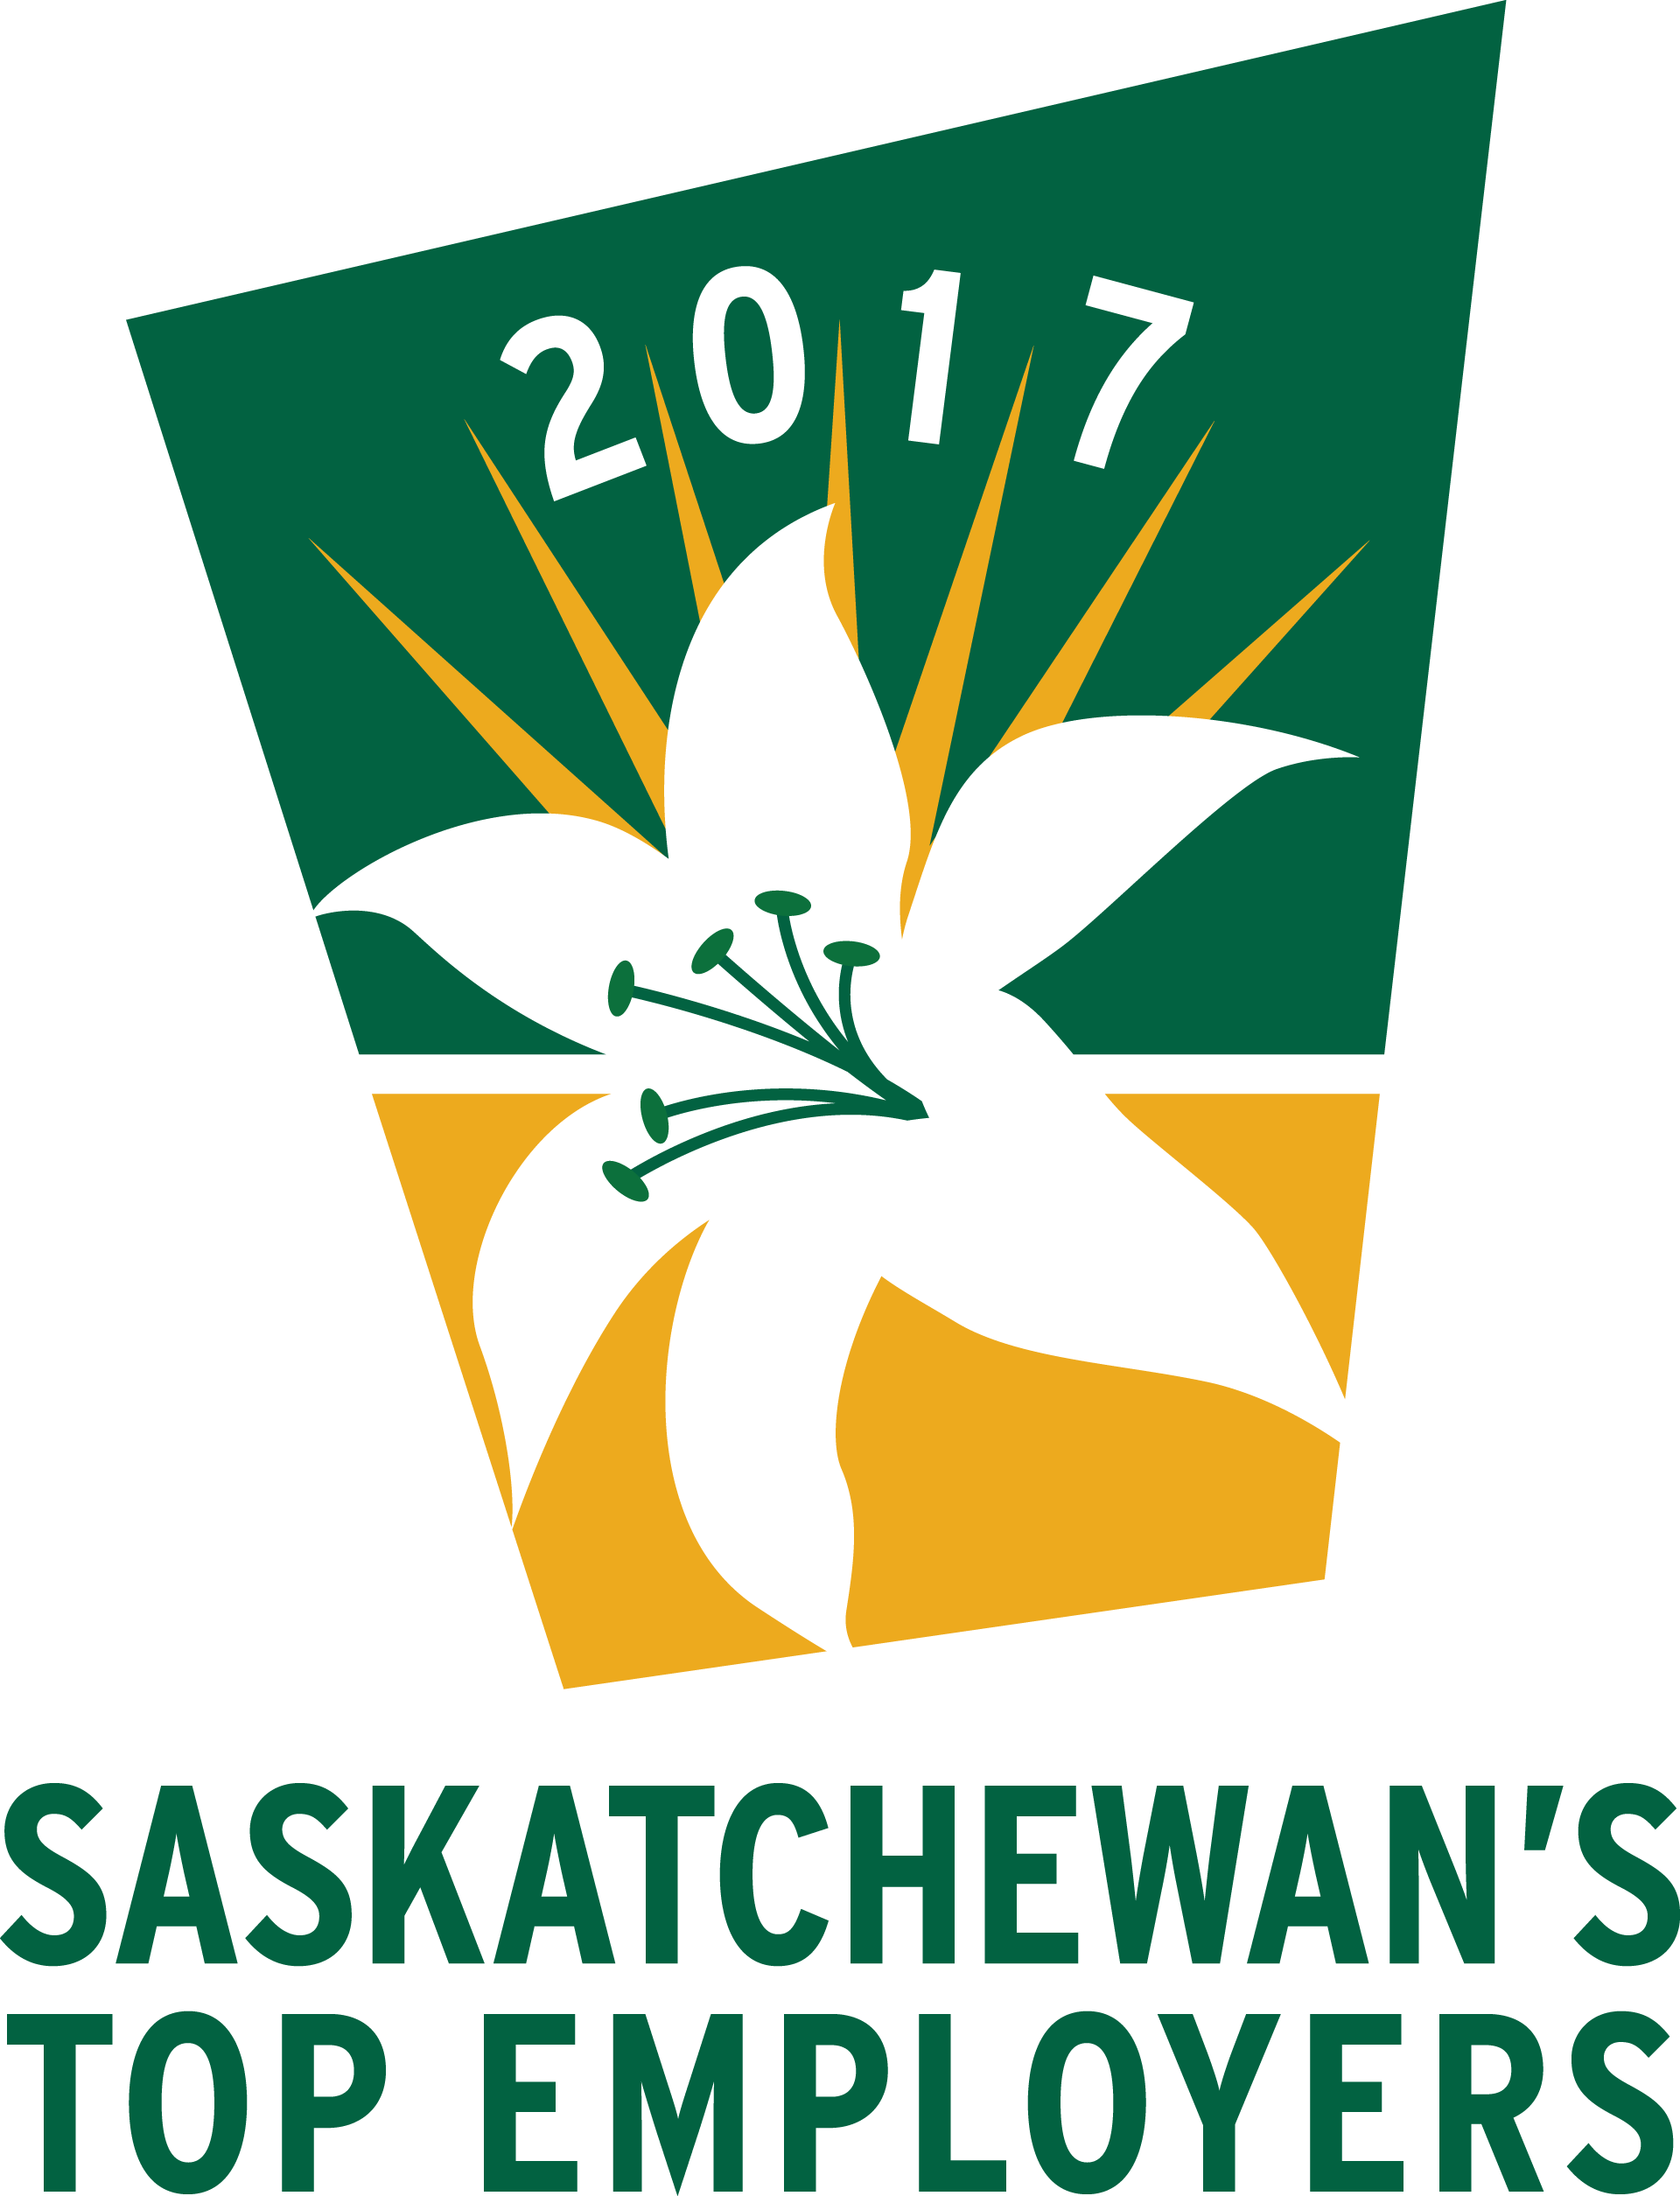 Saskatchewan's Top Employers